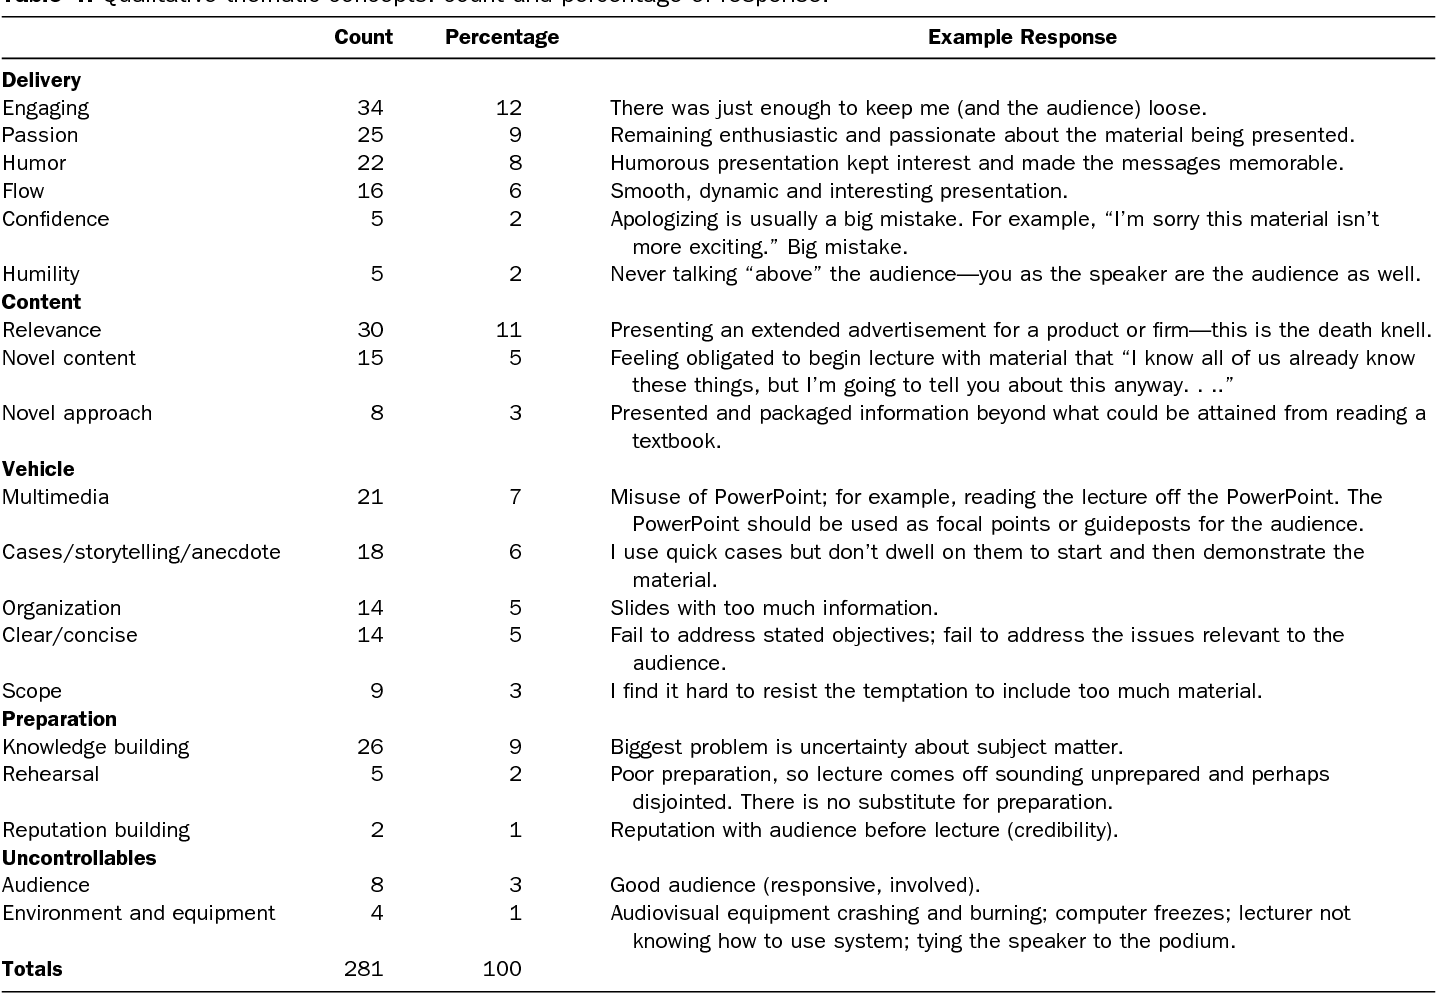 Qualitative analysis of effective lecture strategies in